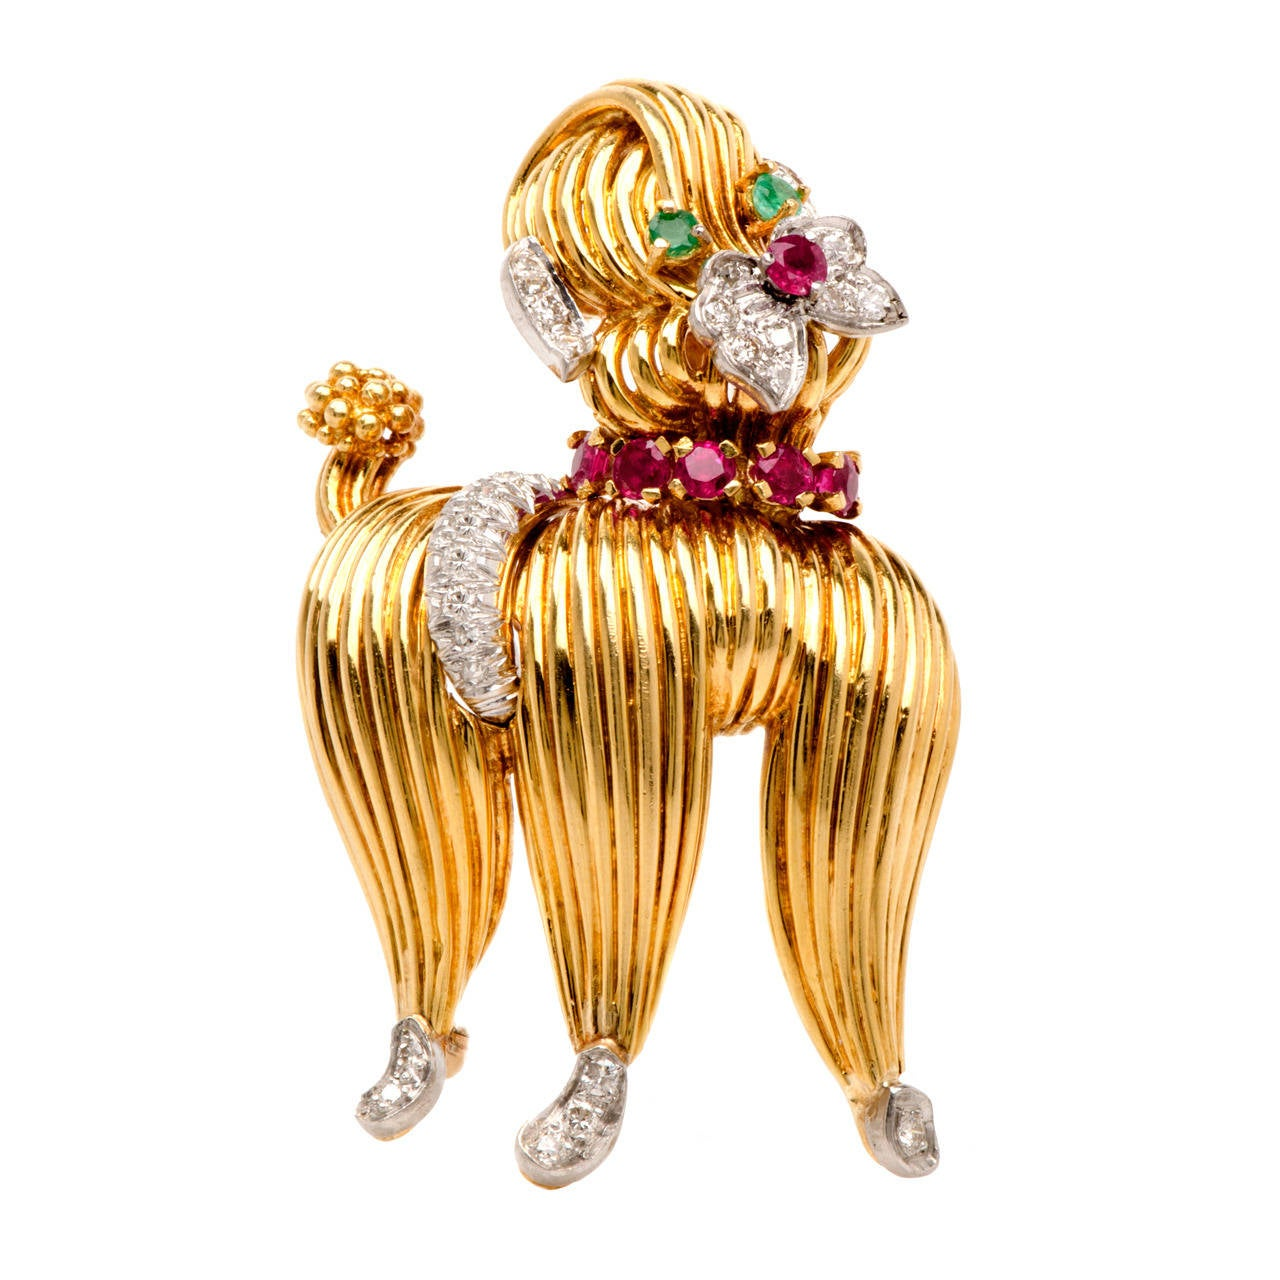 Tiffany And Co Diamond Gold Dog Poodle Brooch Pin At 1stdibs